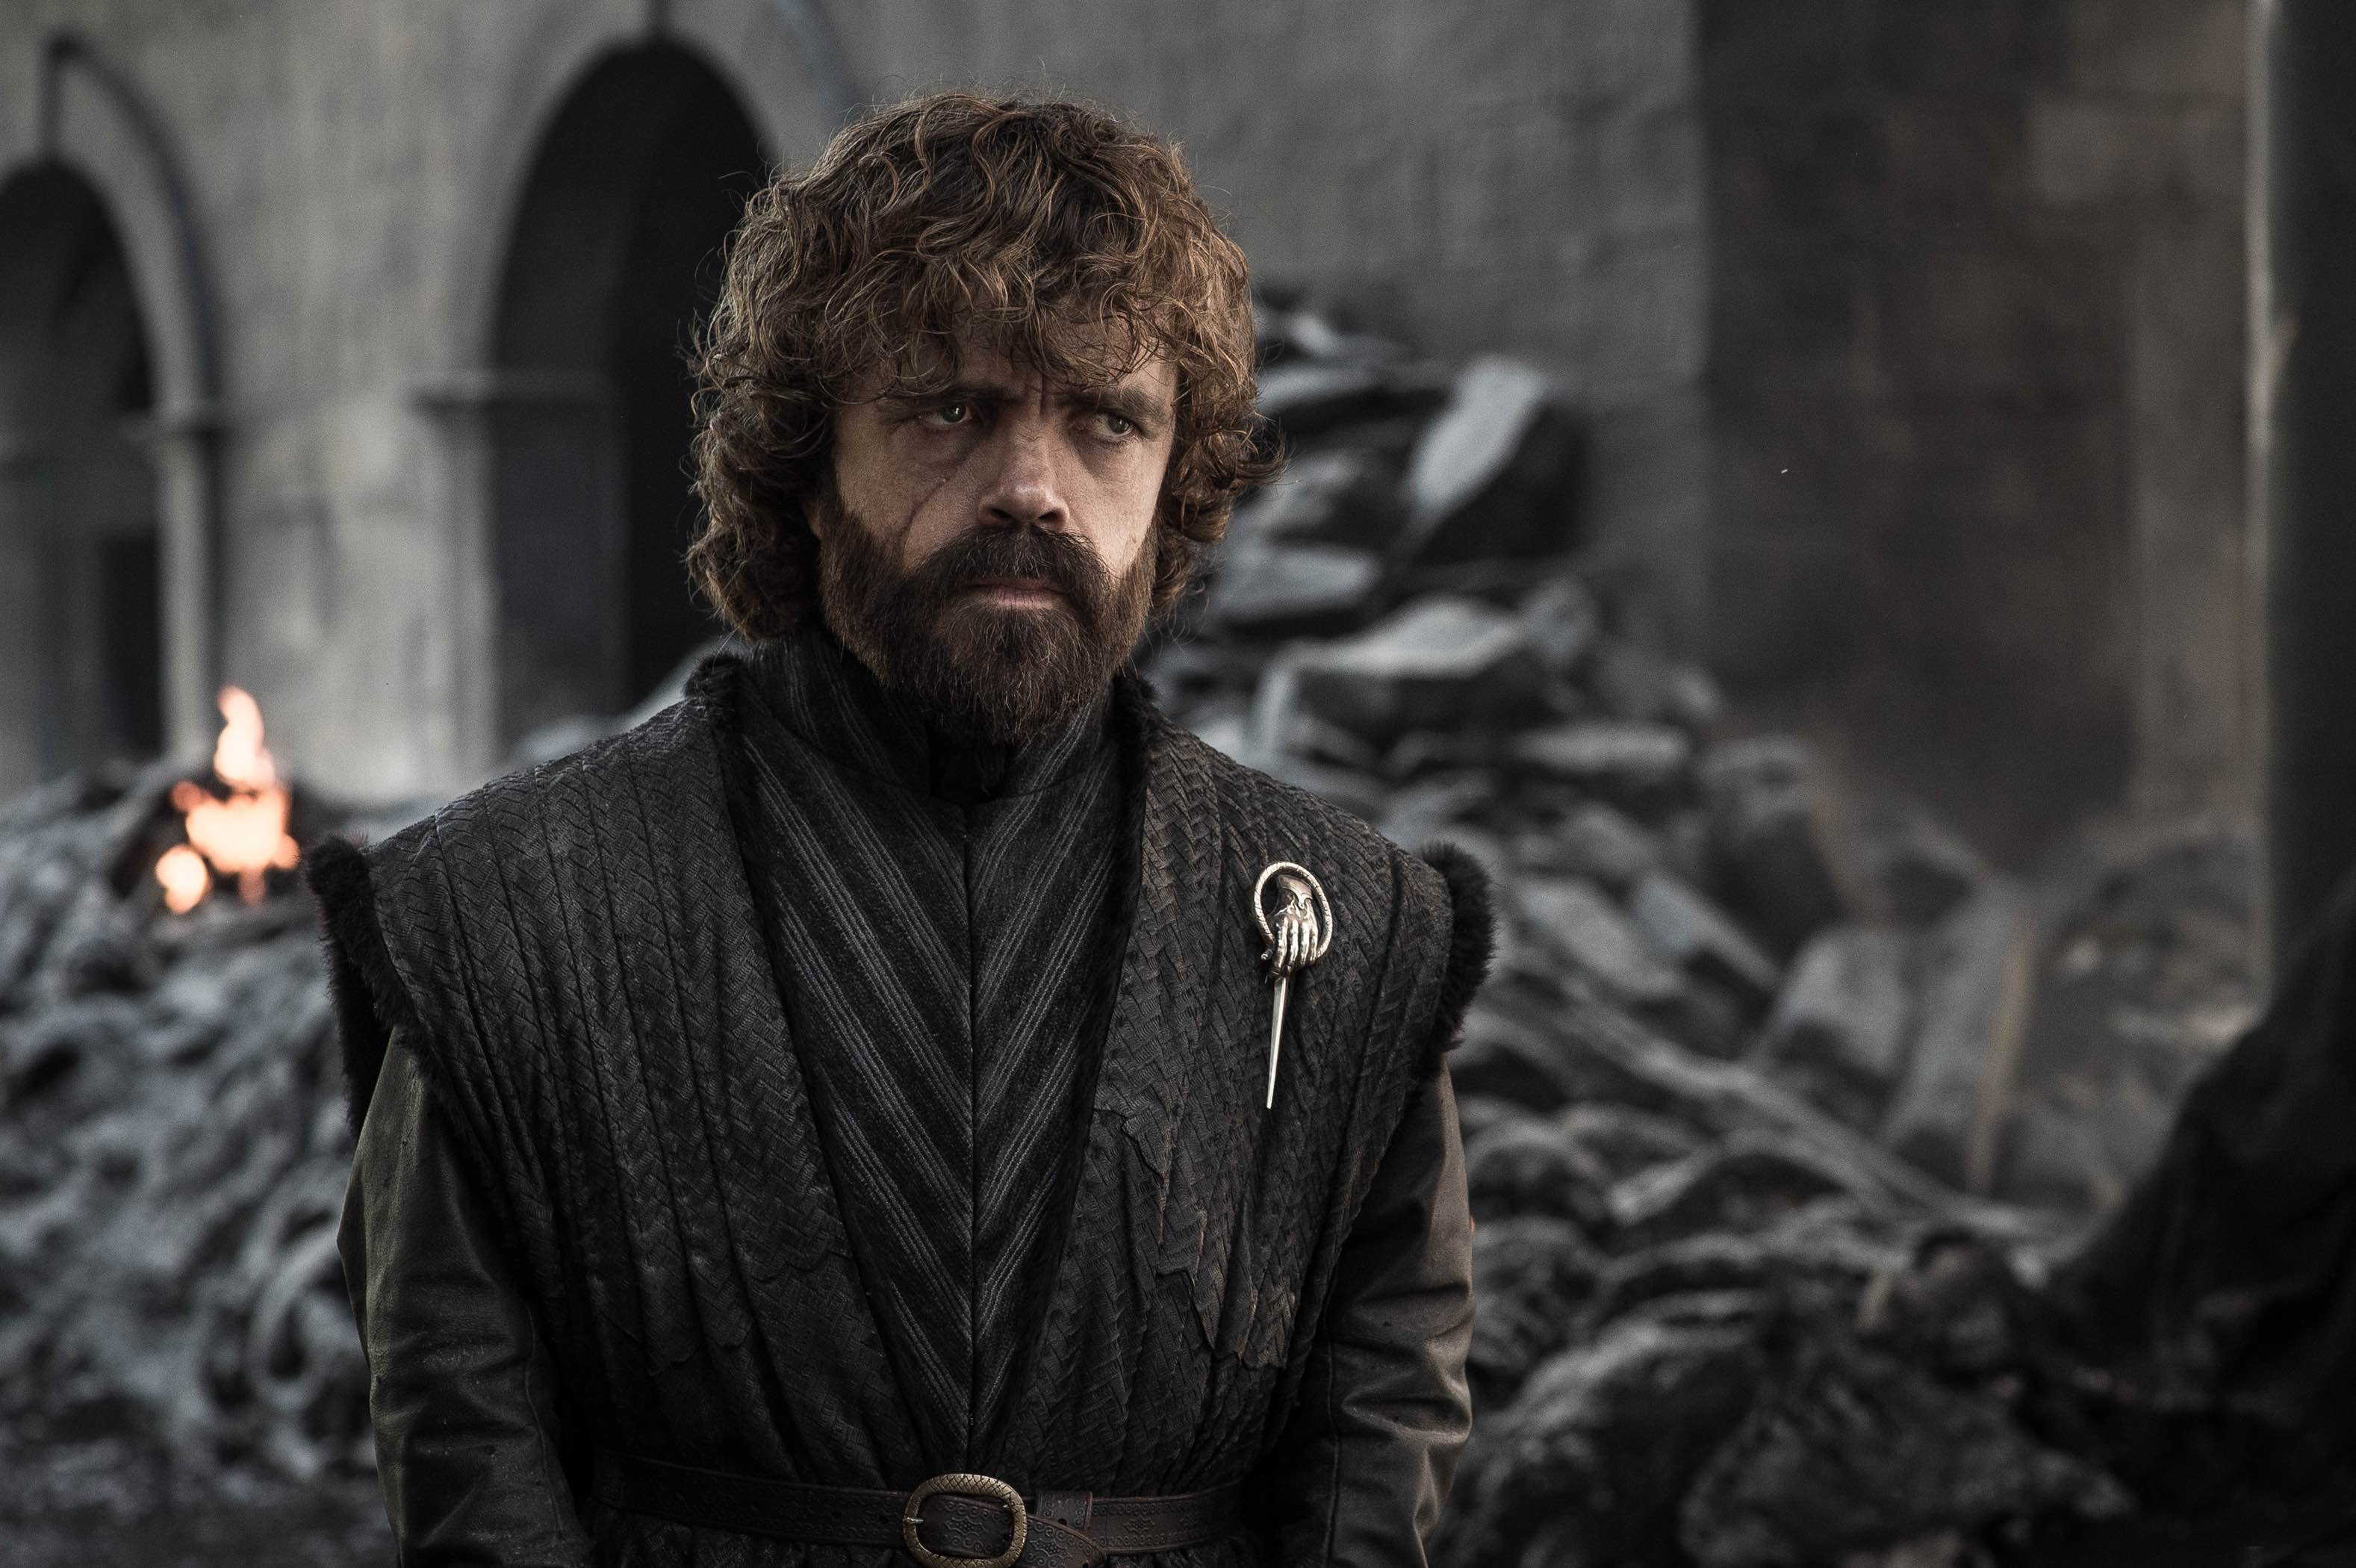 Game of Thrones puntata finale 8x06 (Il Trono di Spade): Tyrion Lannister